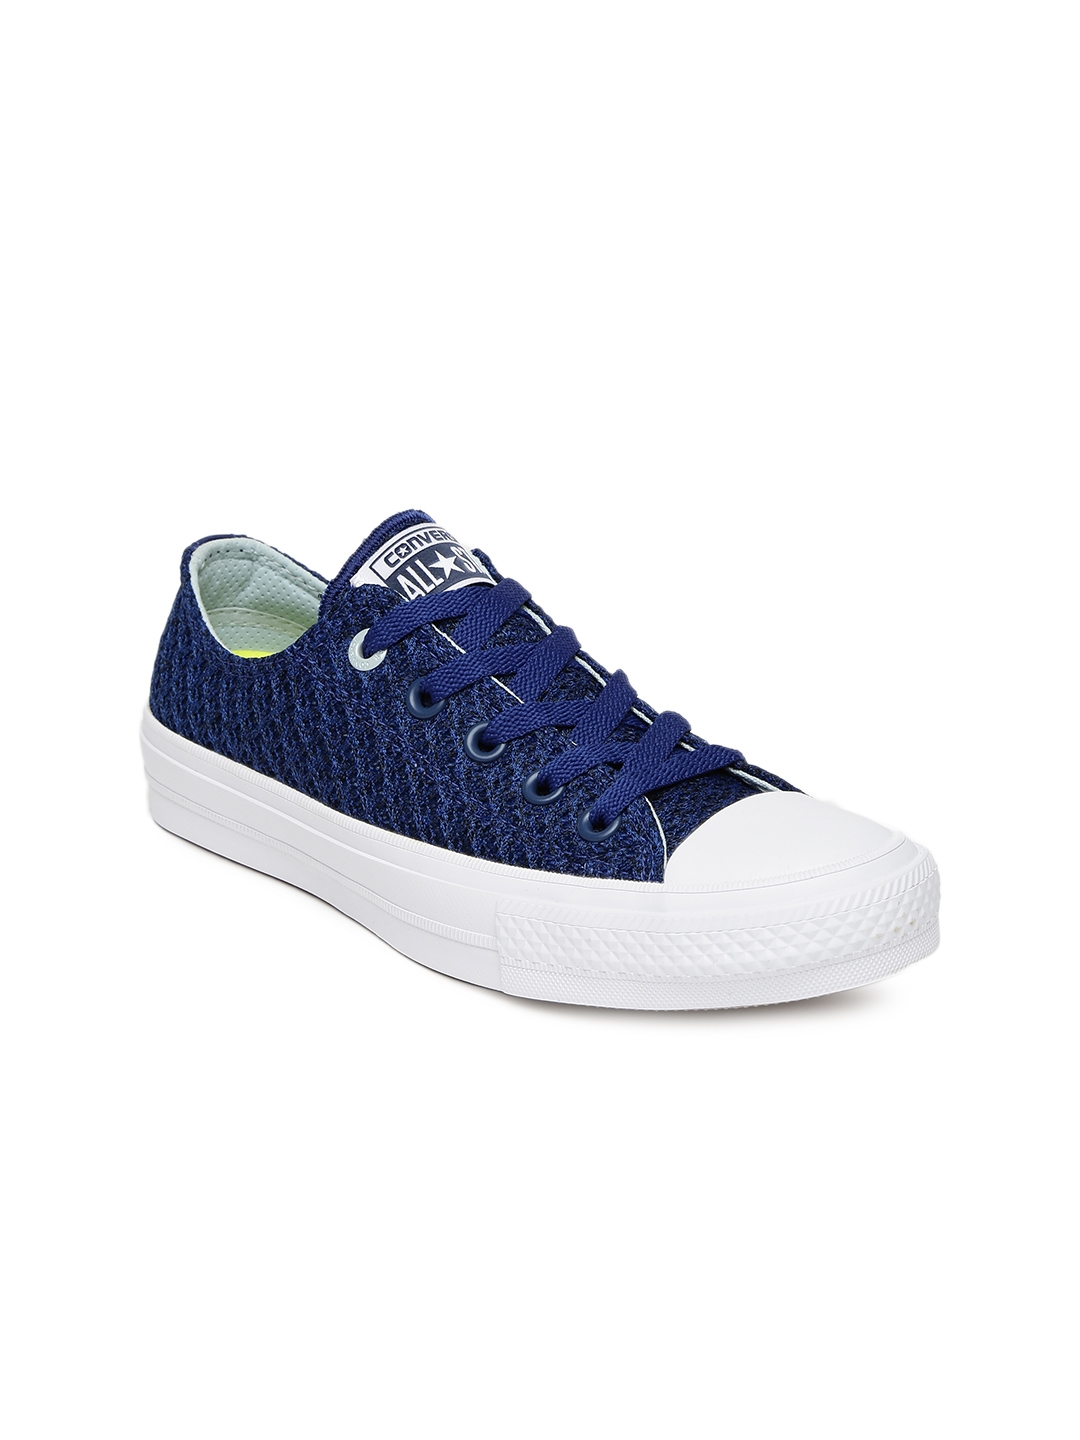 Buy Converse Women Blue Woven Regular Sneakers - Casual Shoes for ... 1883a34d62